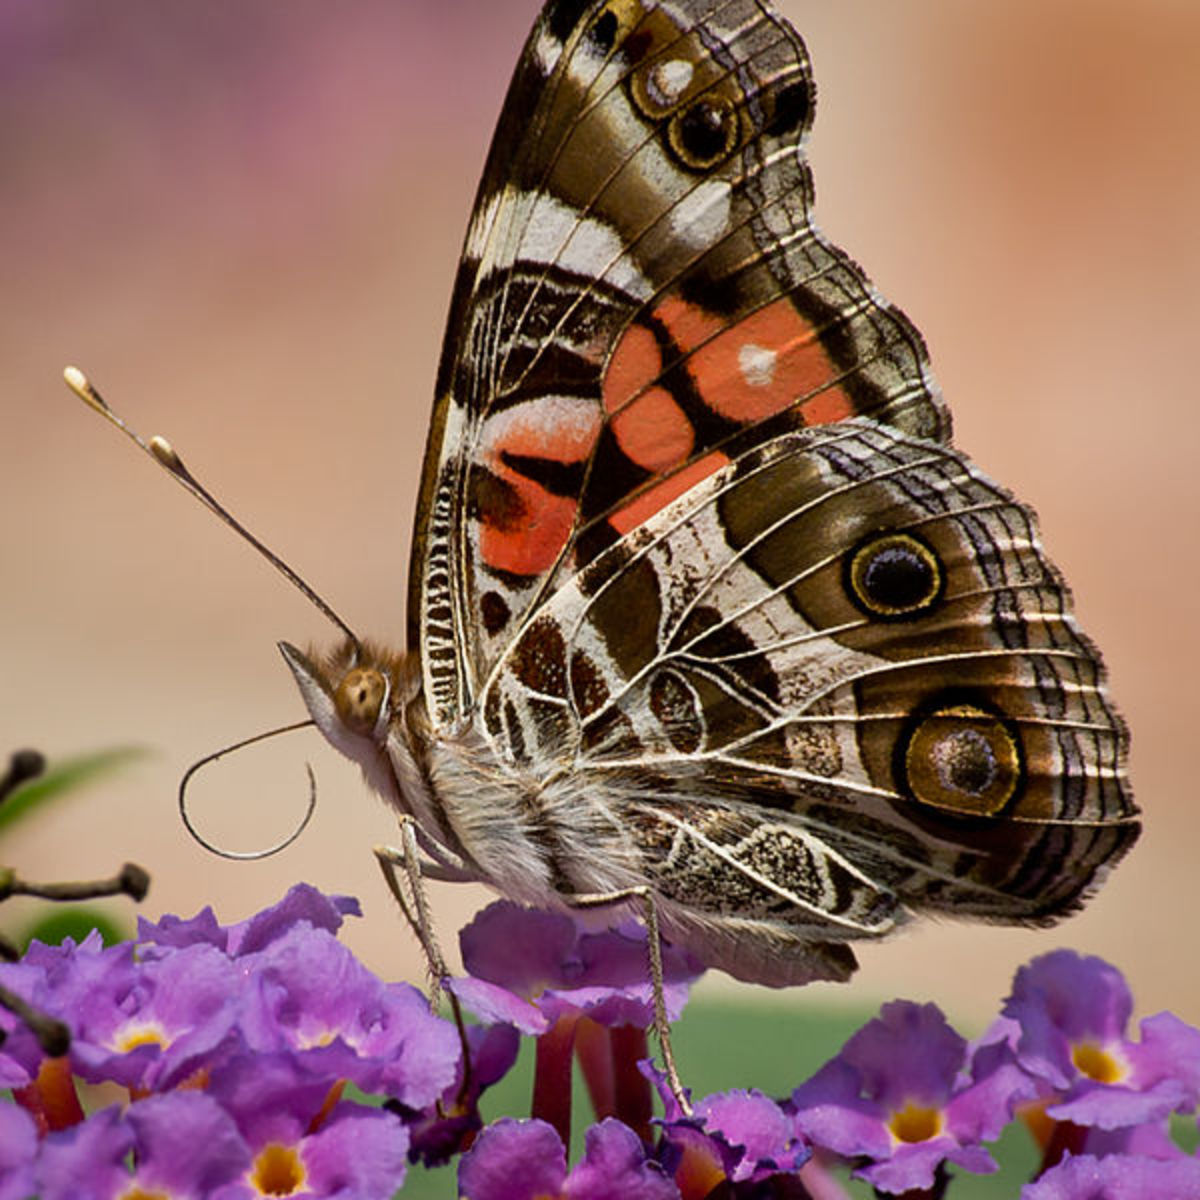 A gorgeous capture of the Painted Lady Butterfly on a purple flower.  Public Domain. I believe this is either lantana flowers, or butterfly bush.  Both attract butterflies.